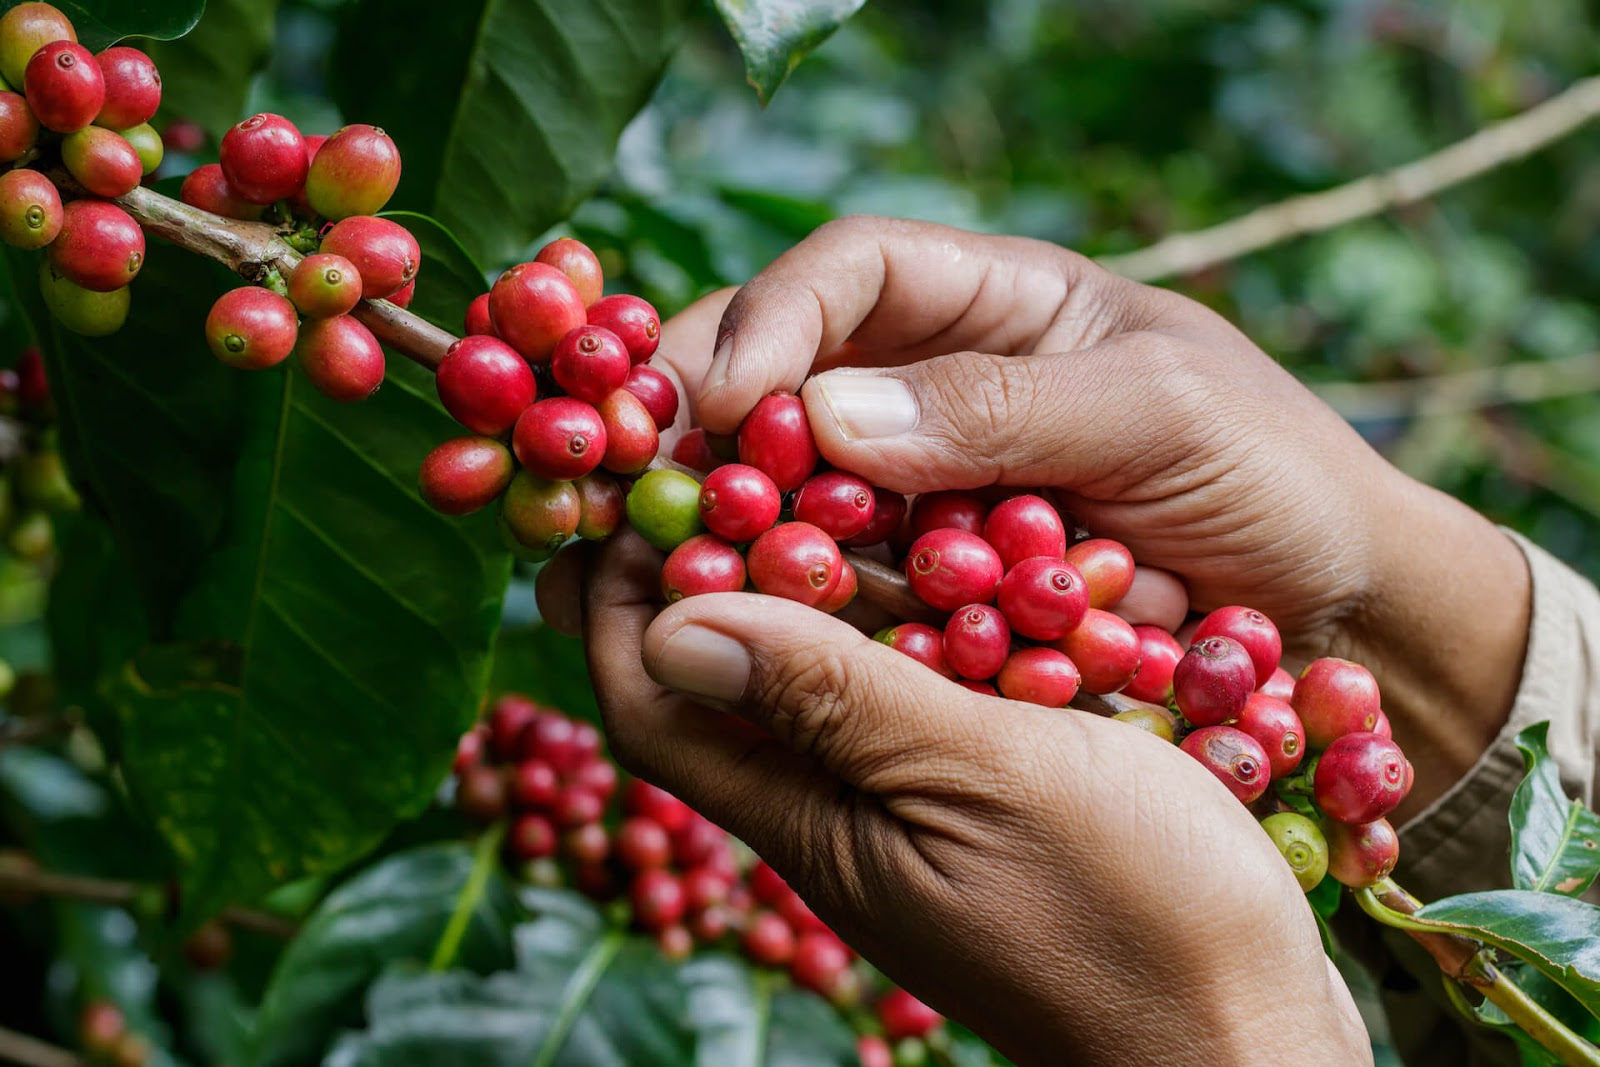 Hand picking off red coffee berries